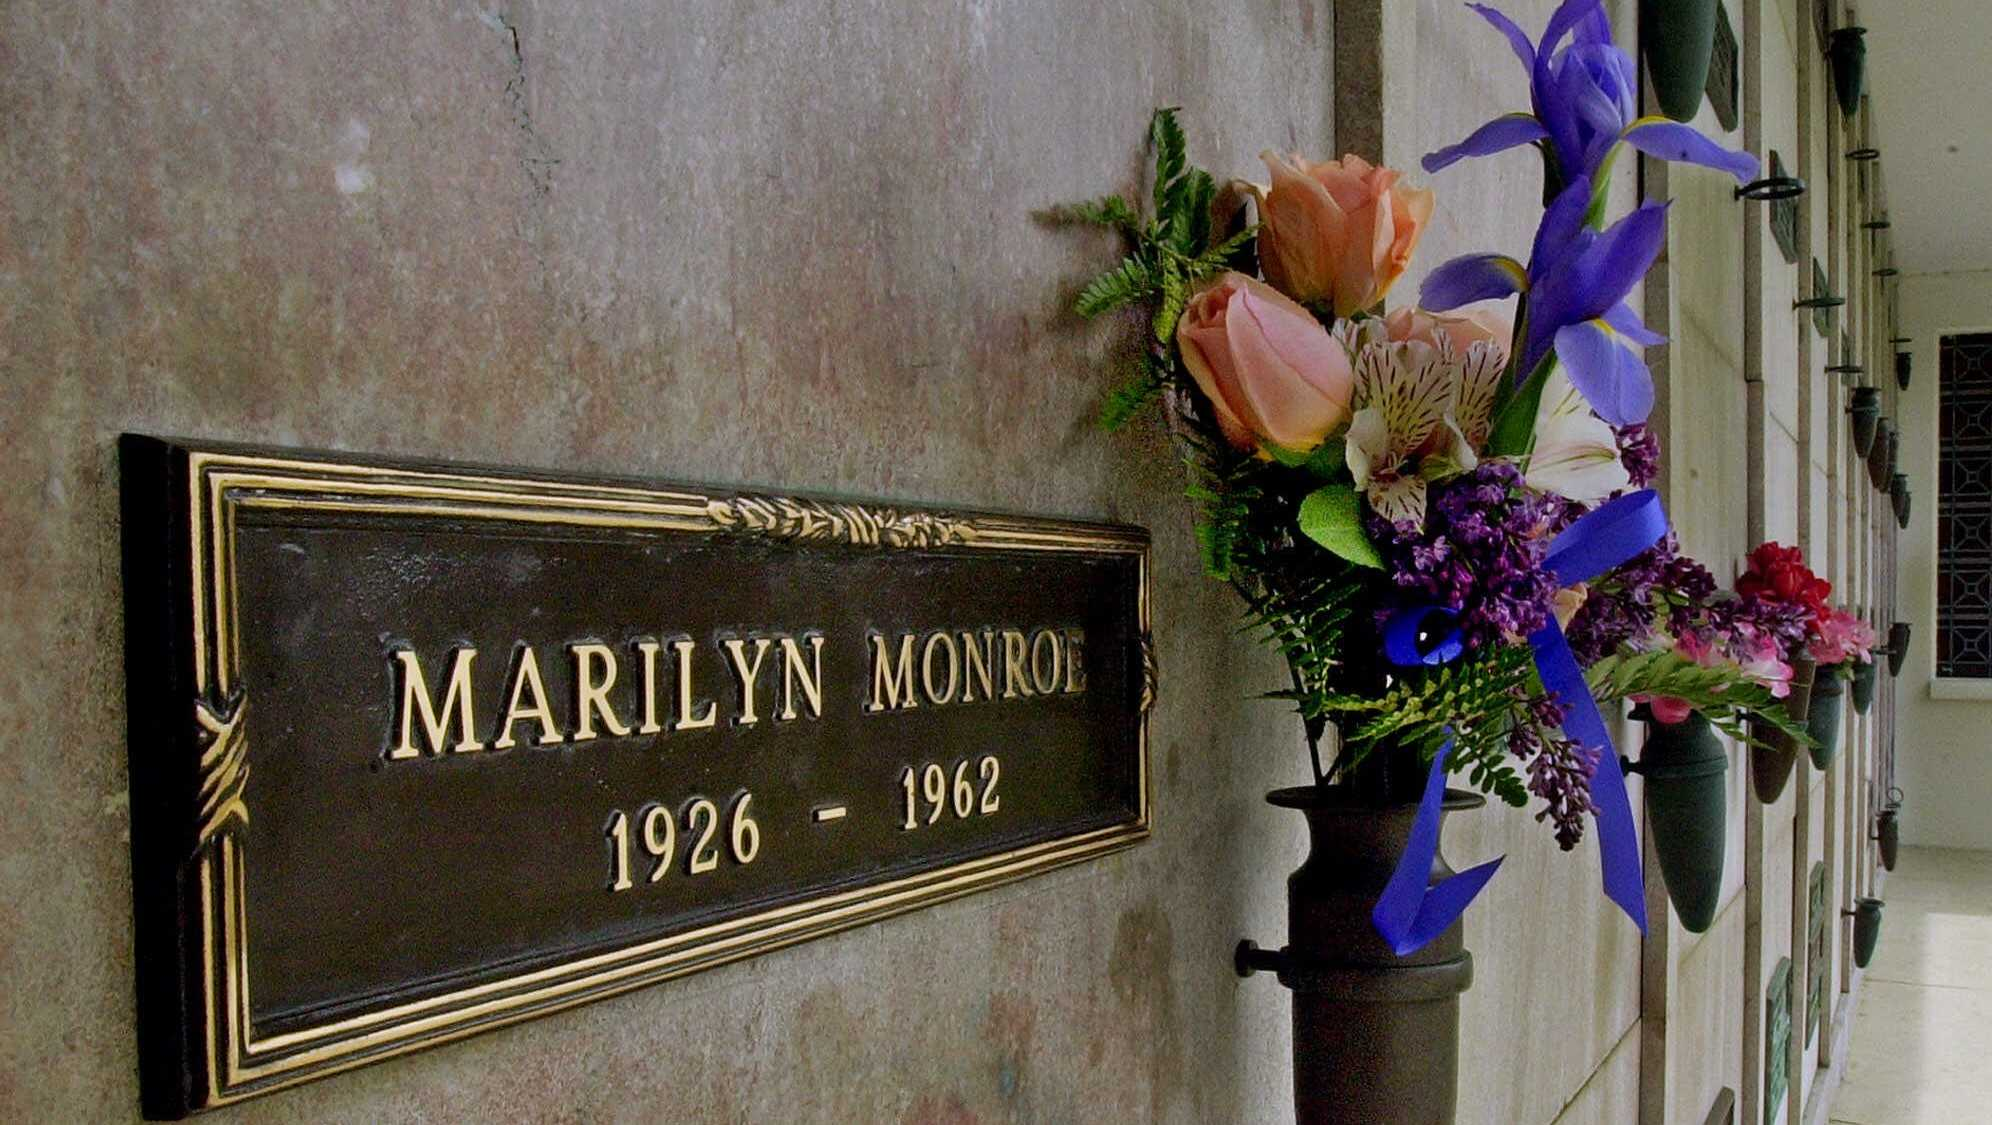 ​In this April 20, 2001 file photo, a bouquet of fresh flowers adorns the crypt of Marilyn Monroe at Westwood Village Memorial Park Cemetery in Los Angeles​